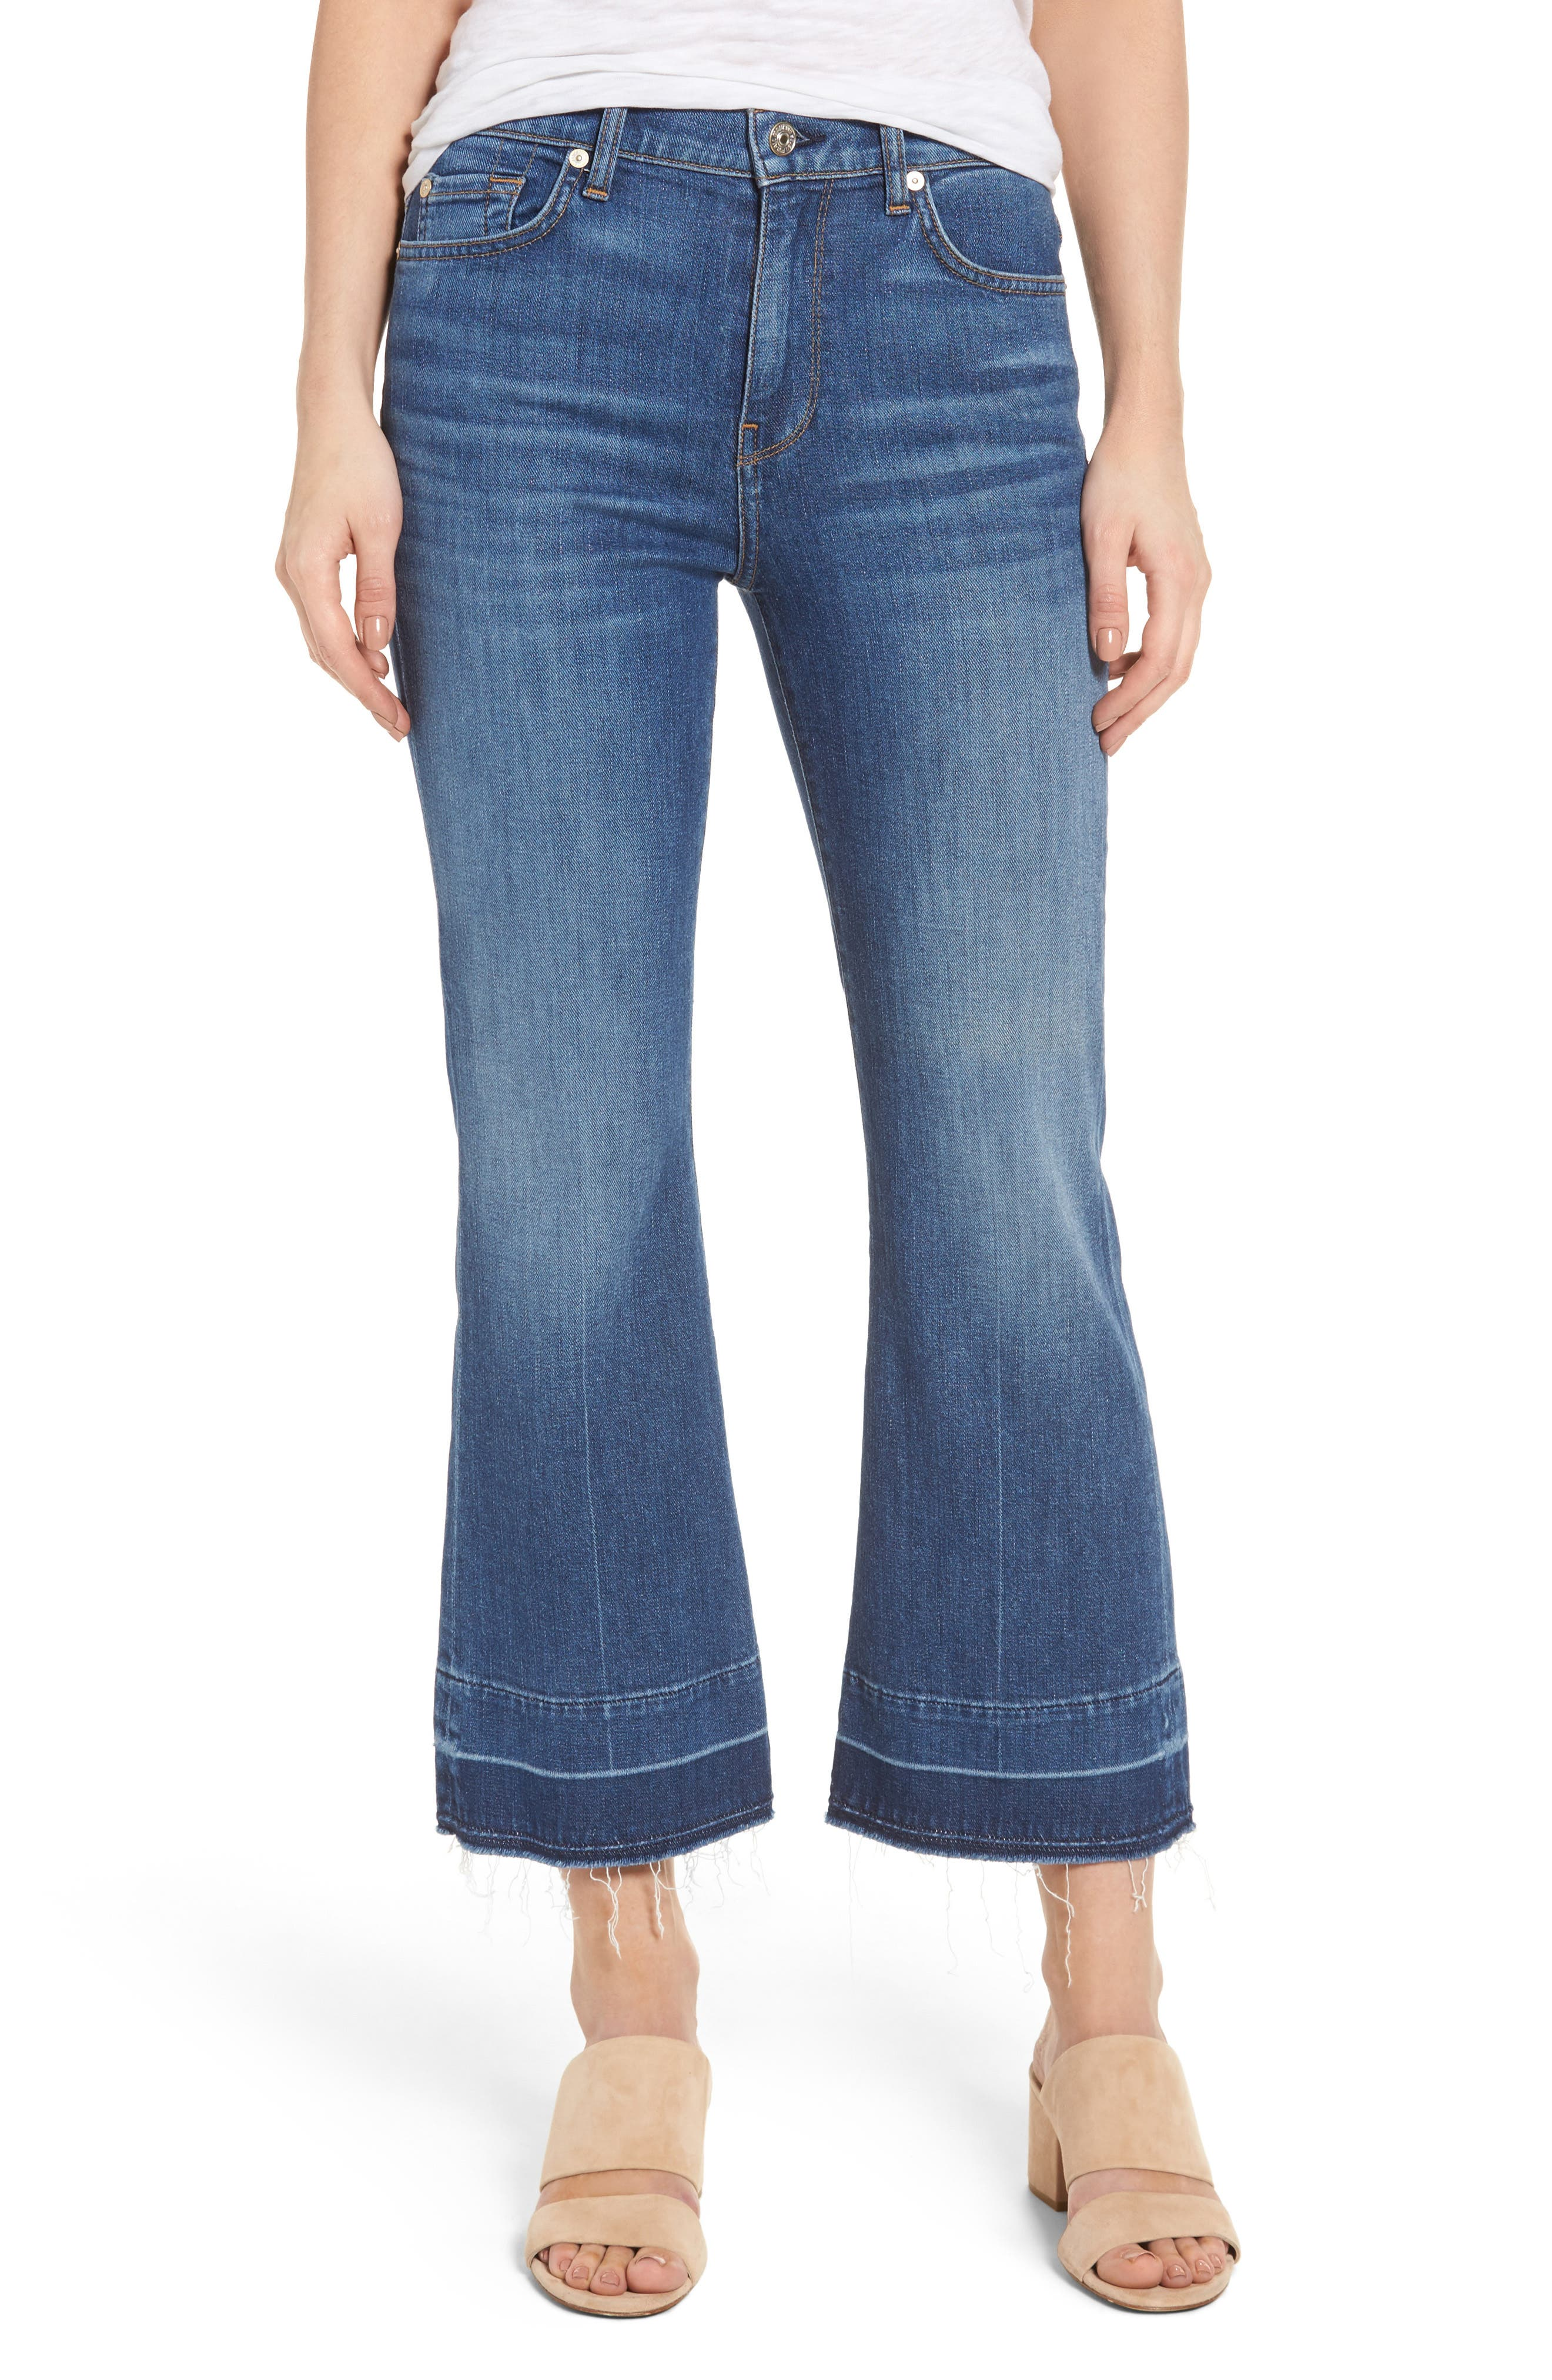 7 FOR ALL MANKIND<SUP>®</SUP>, Ali Split Hem Crop Flare Jeans, Main thumbnail 1, color, 401